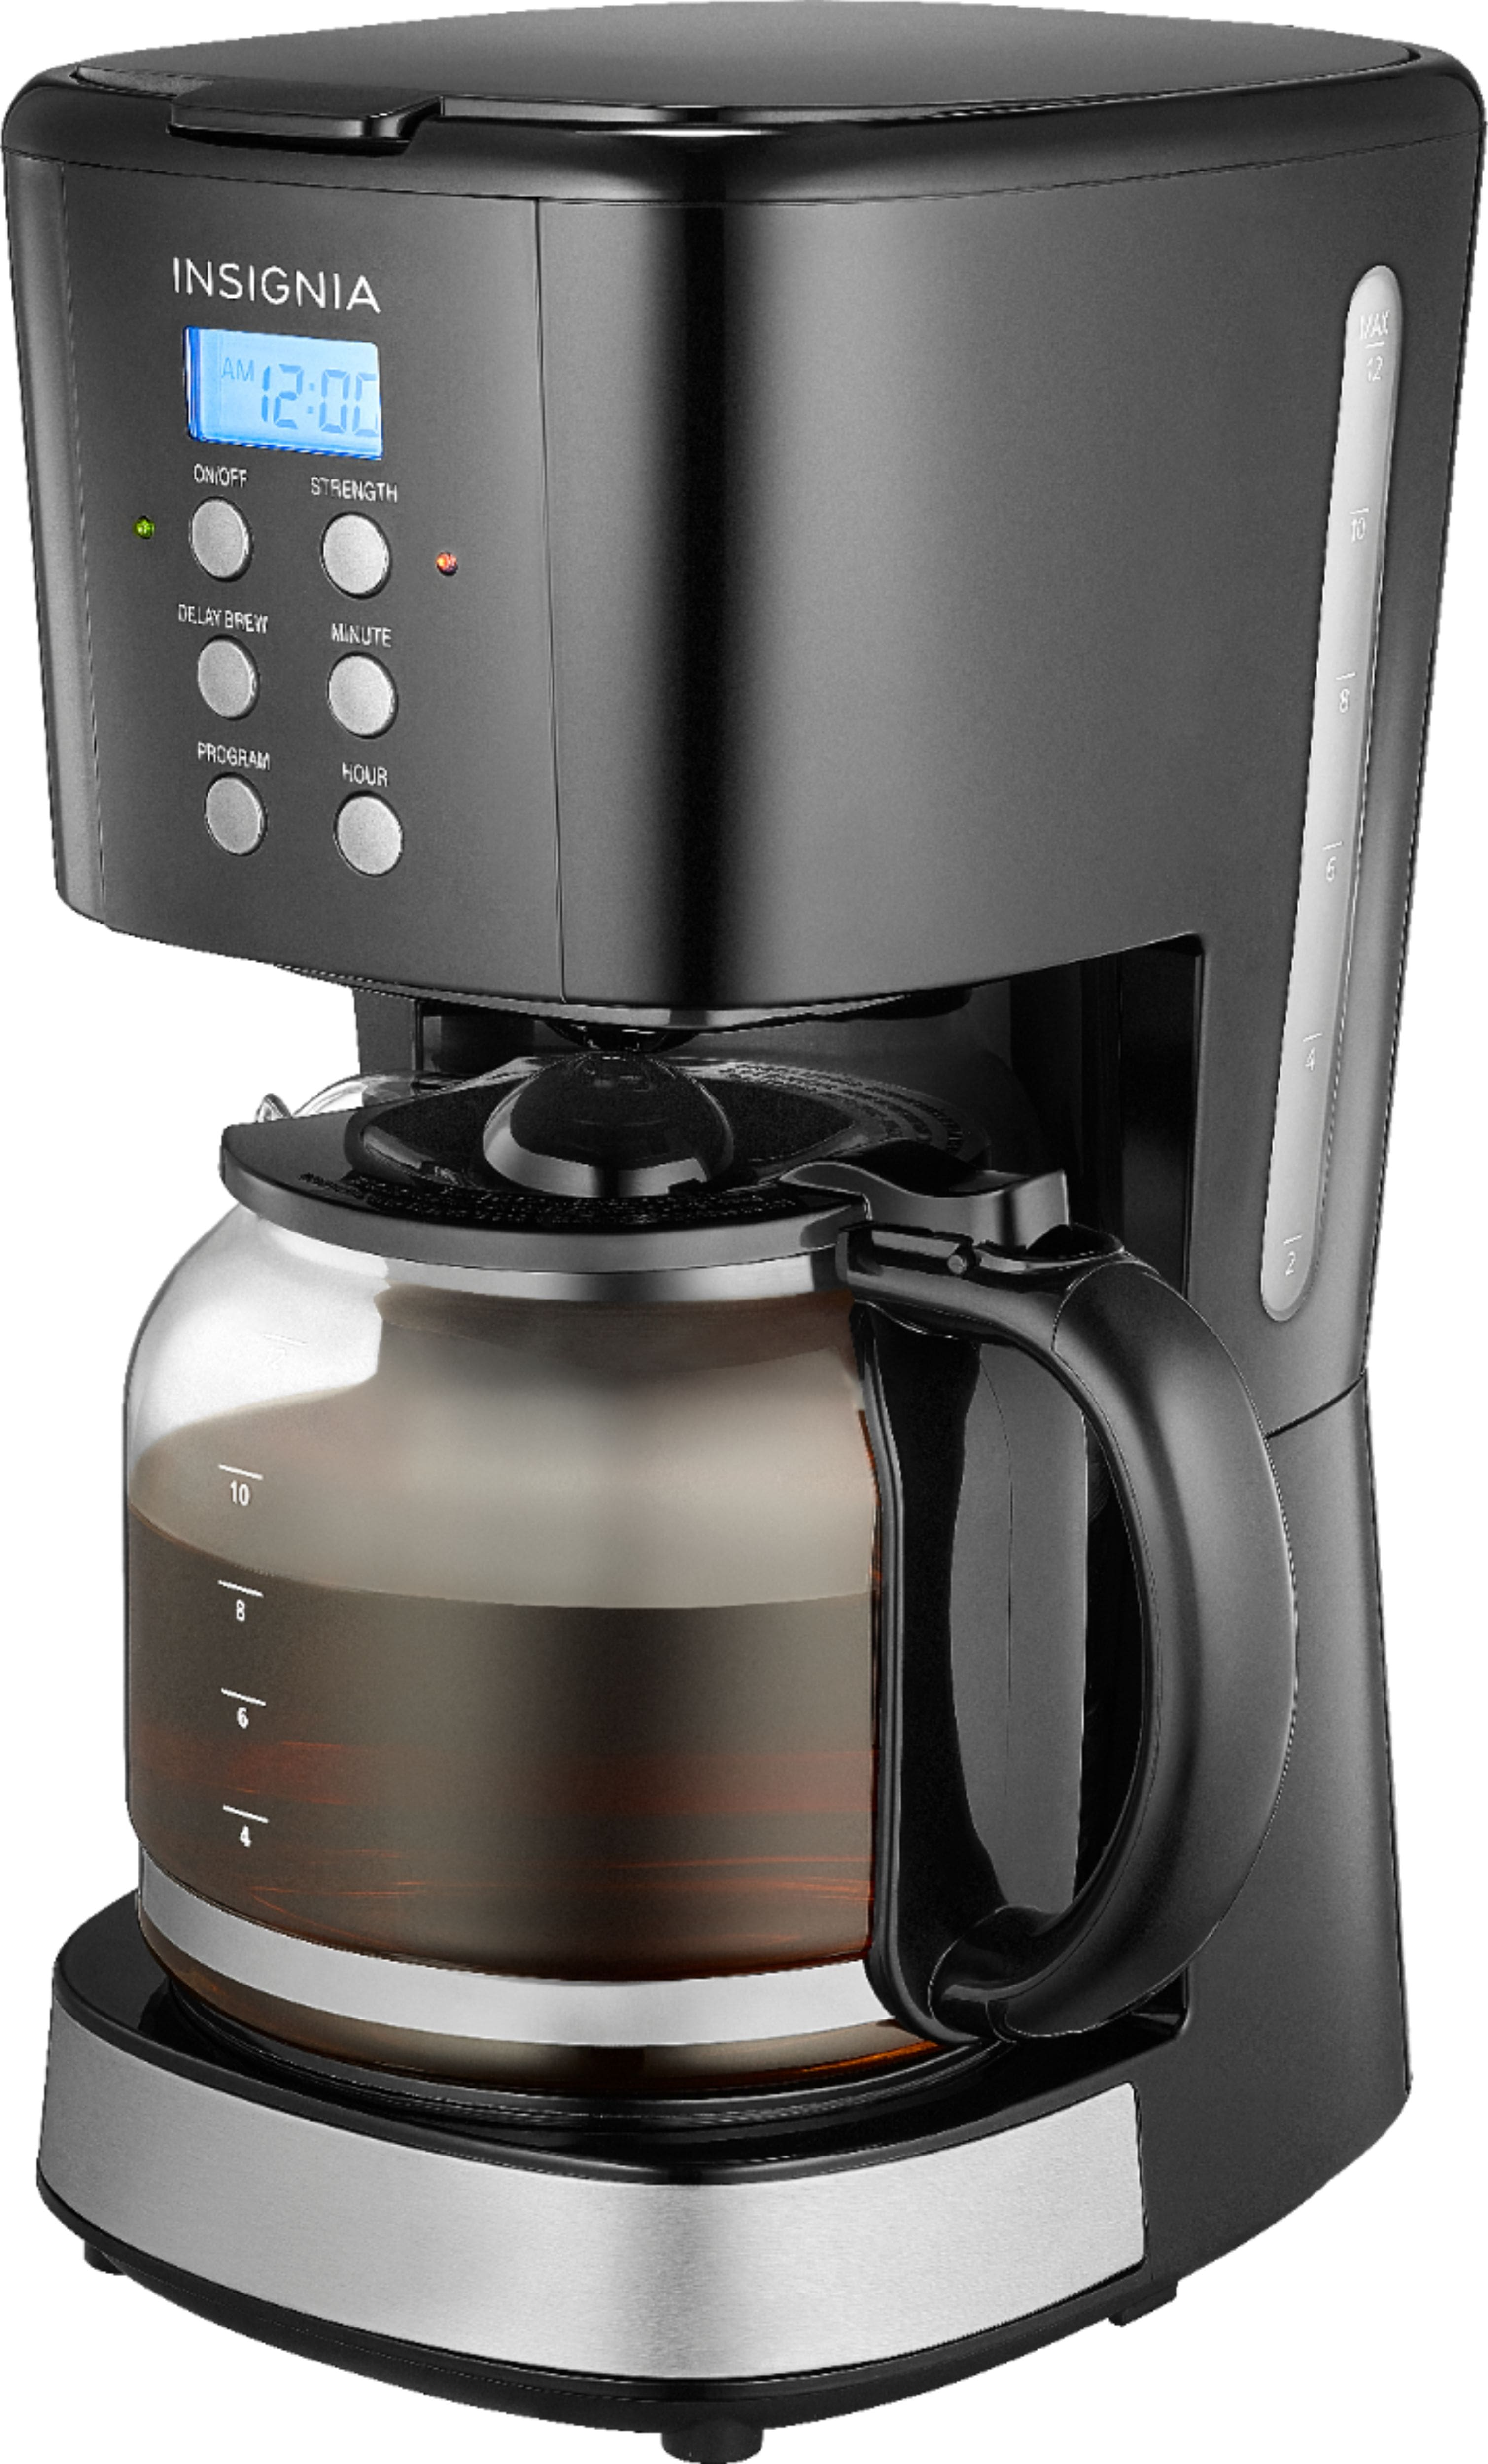 Insignia™ - 12-Cup Coffee Maker - Black $14.99, 10-Cup Stainless Steel $29.99